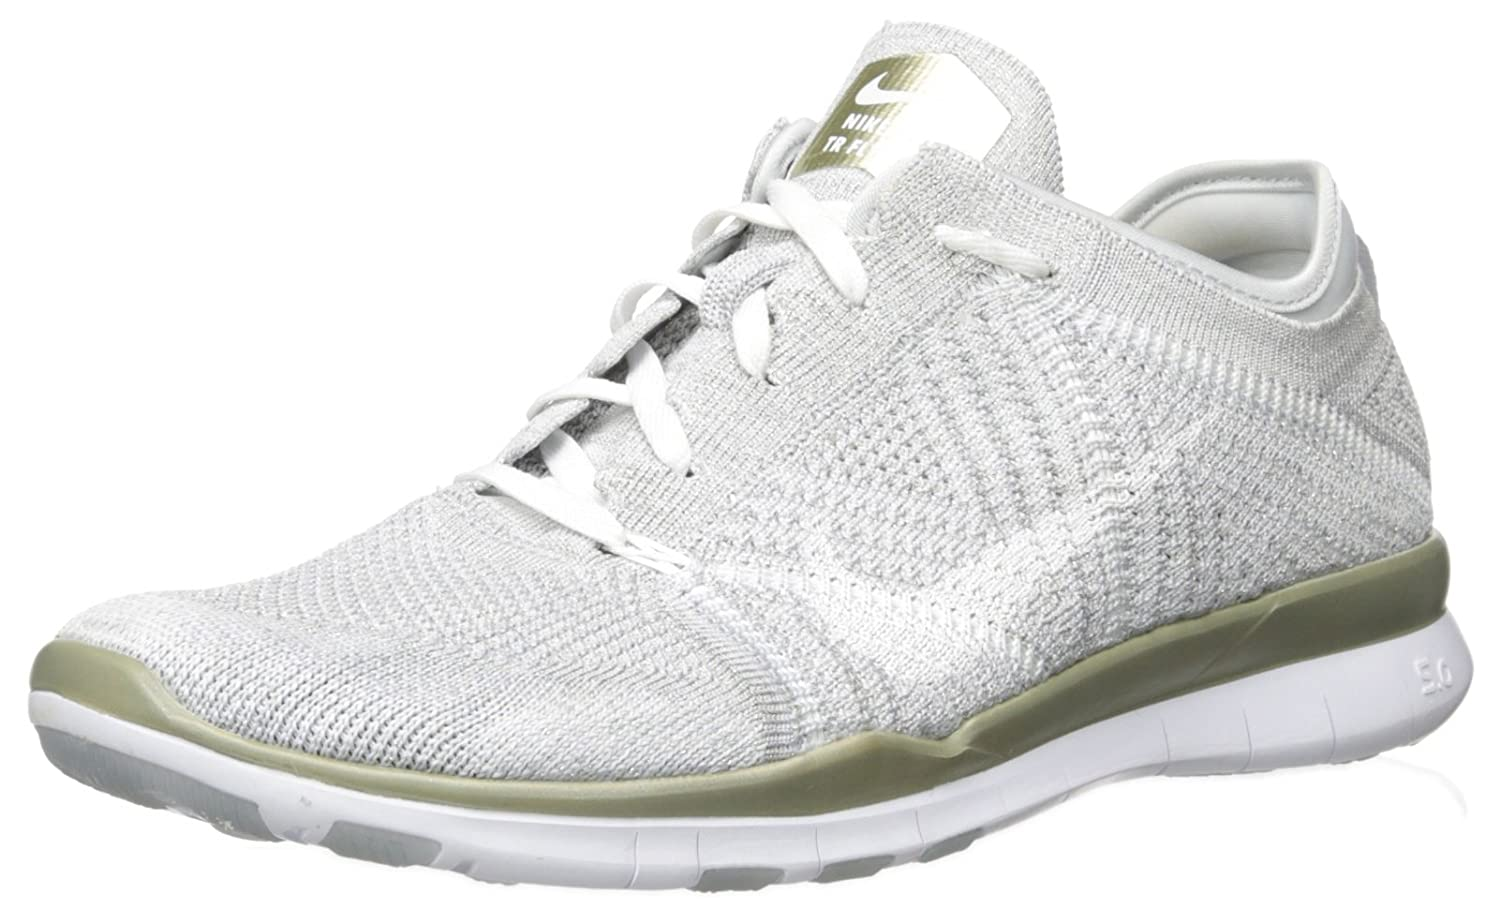 nike running shoes flyknit racer, Nike free 50 tr fit damen